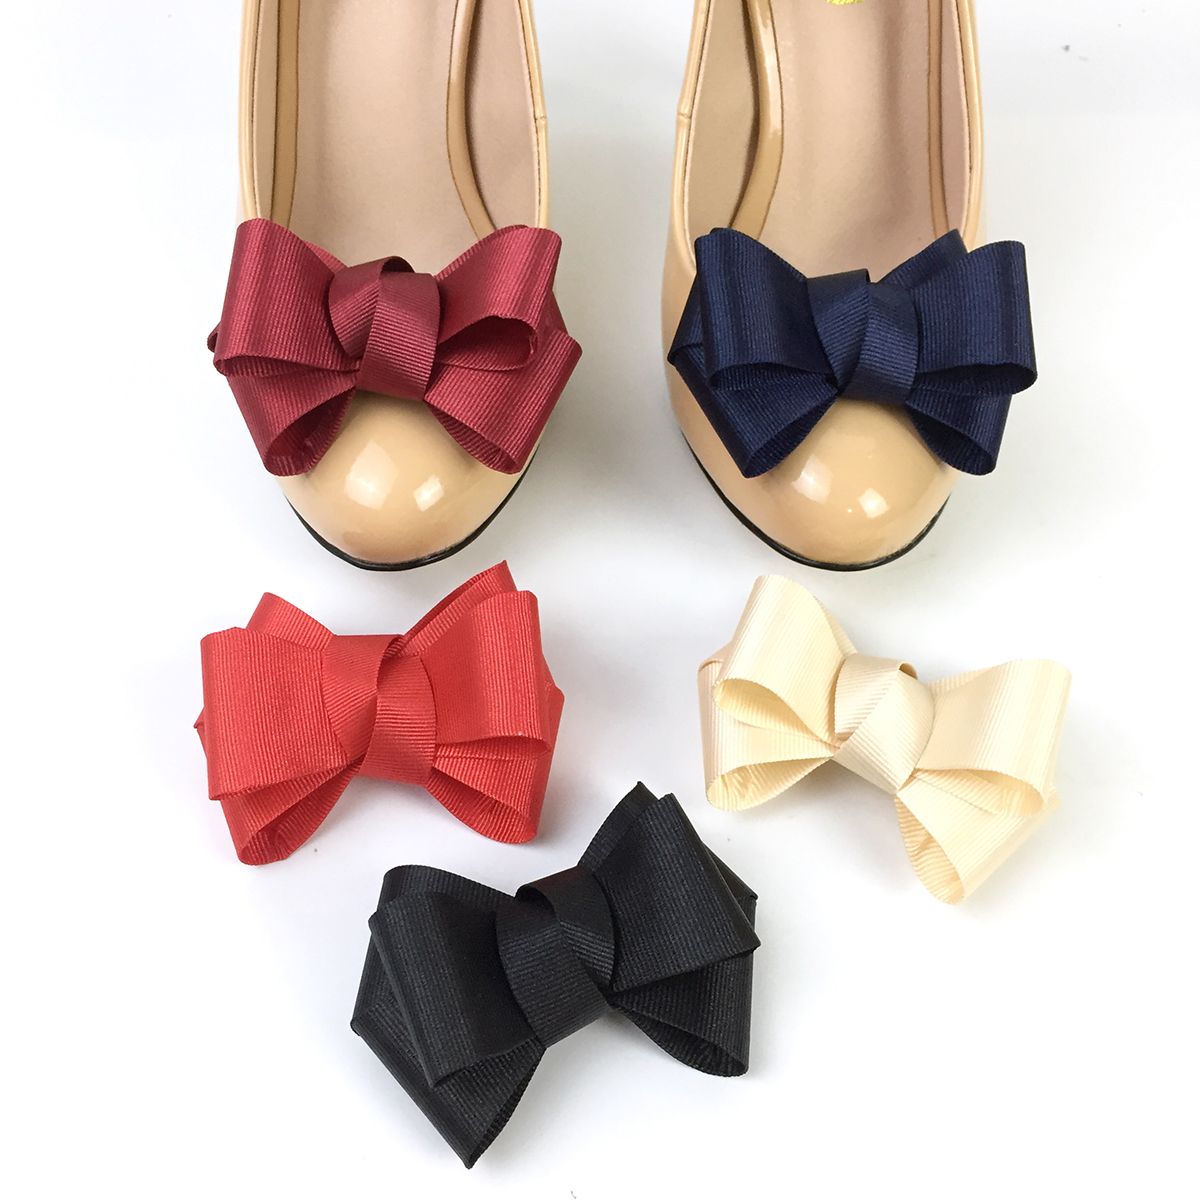 One Pair Bow Shoe Charms For Women High Heels Flats Shoes Accessoires Bowknot Shoe Decoration Shoe Charm Bow DIY Glue On